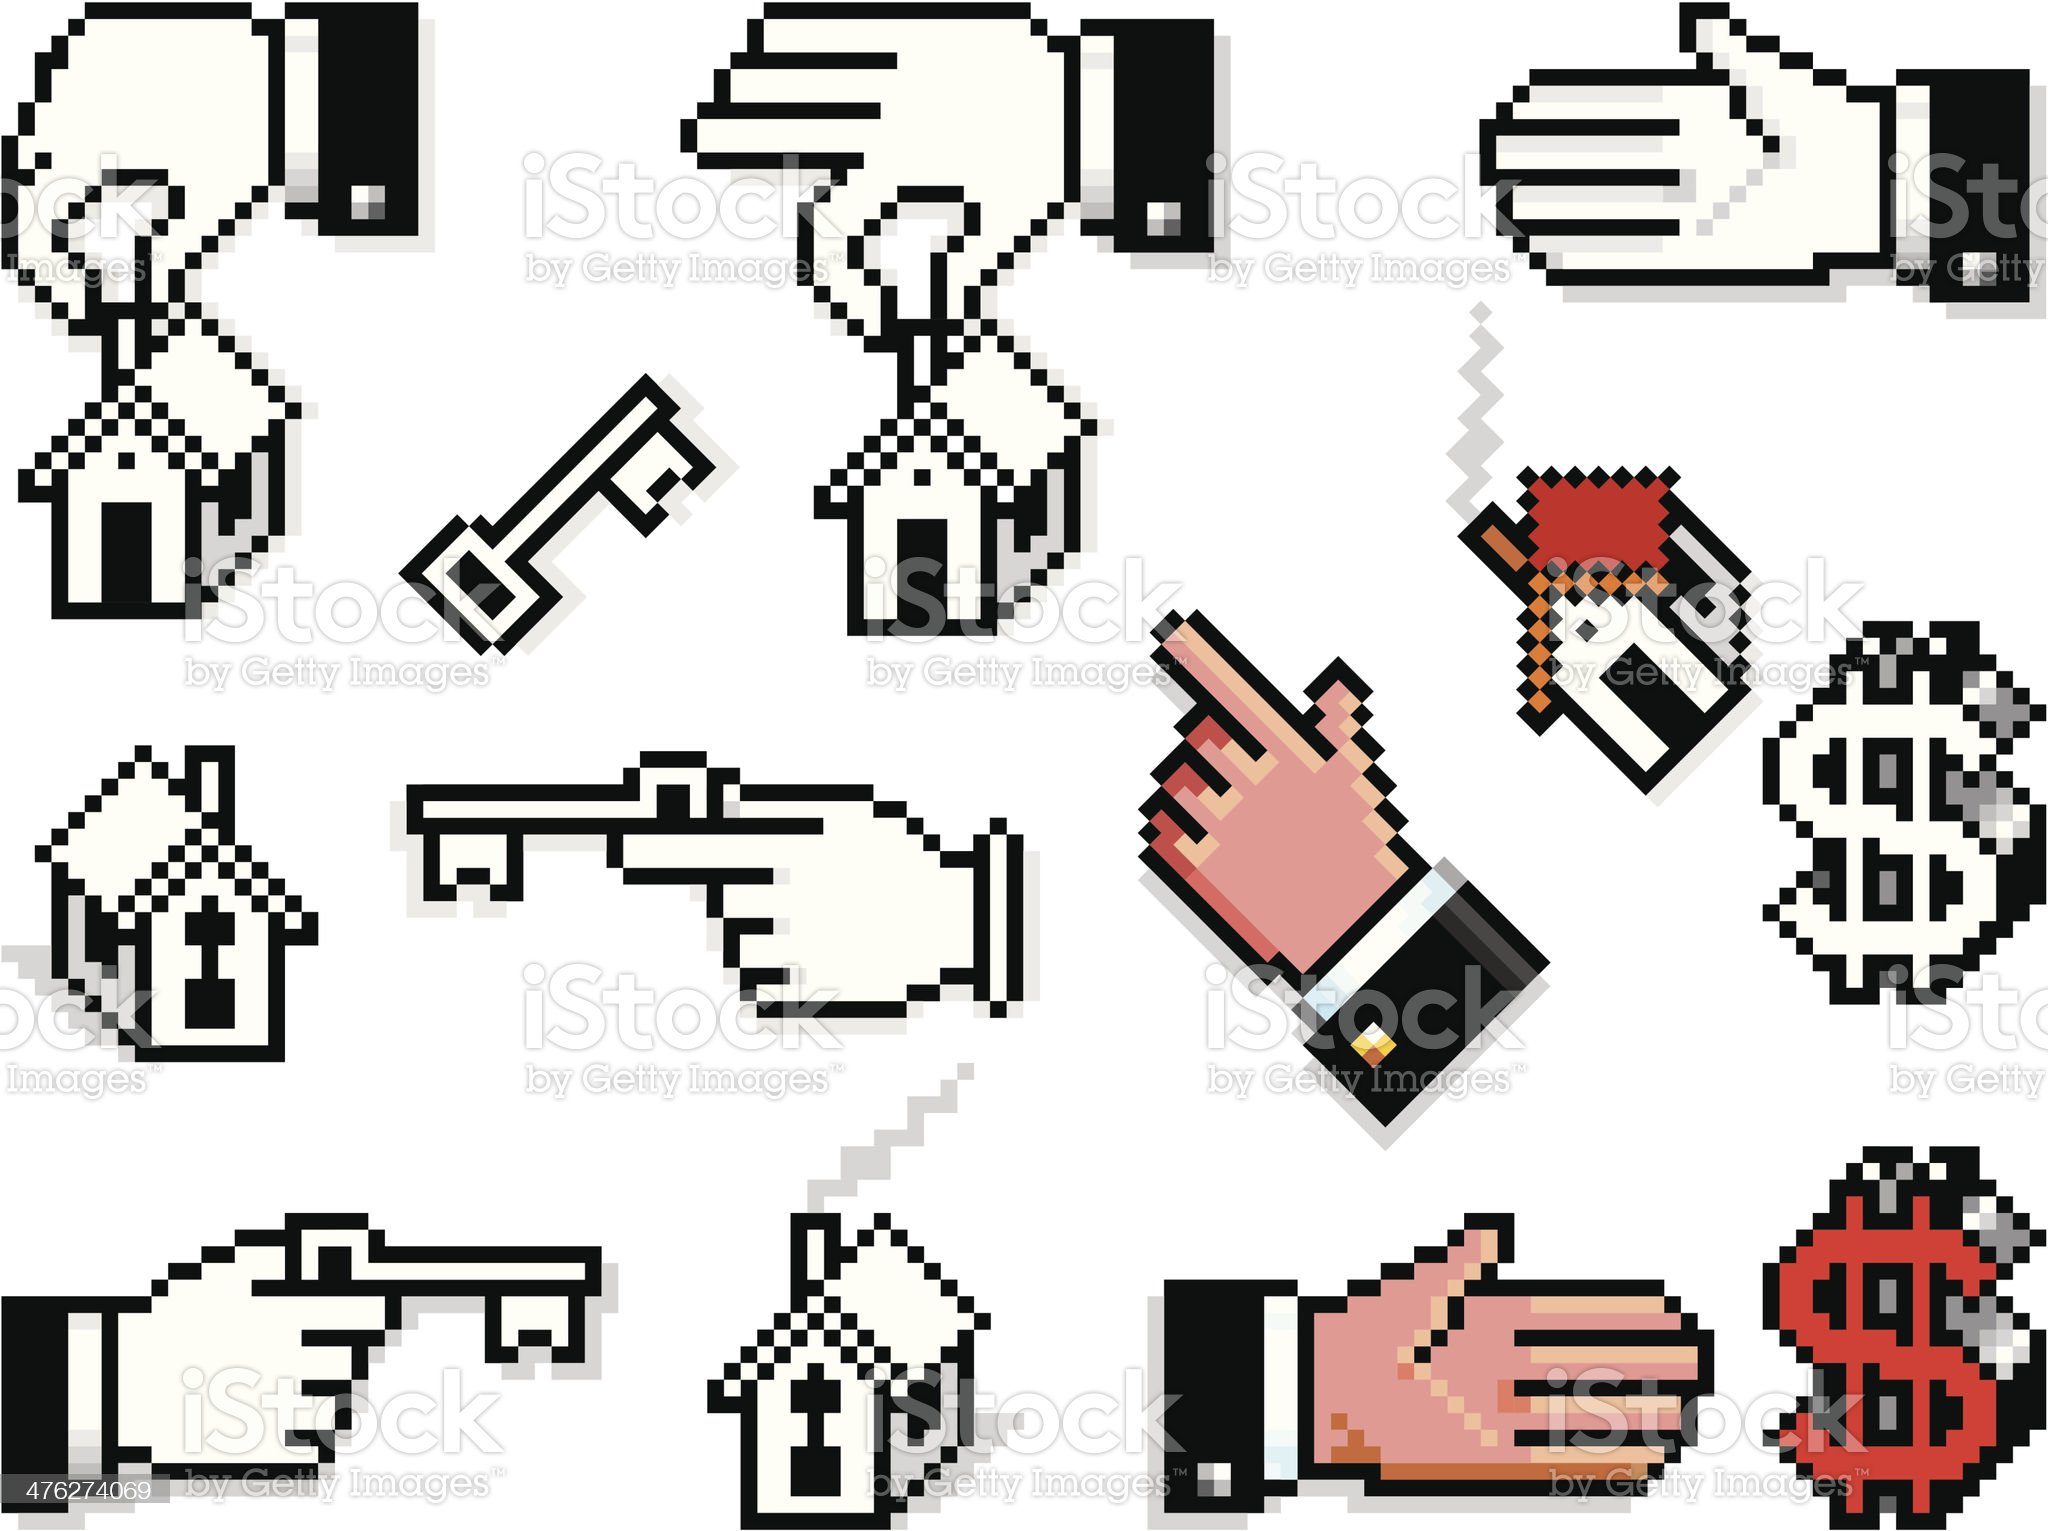 Pixelated Hands with Houses and Keys royalty-free stock vector art